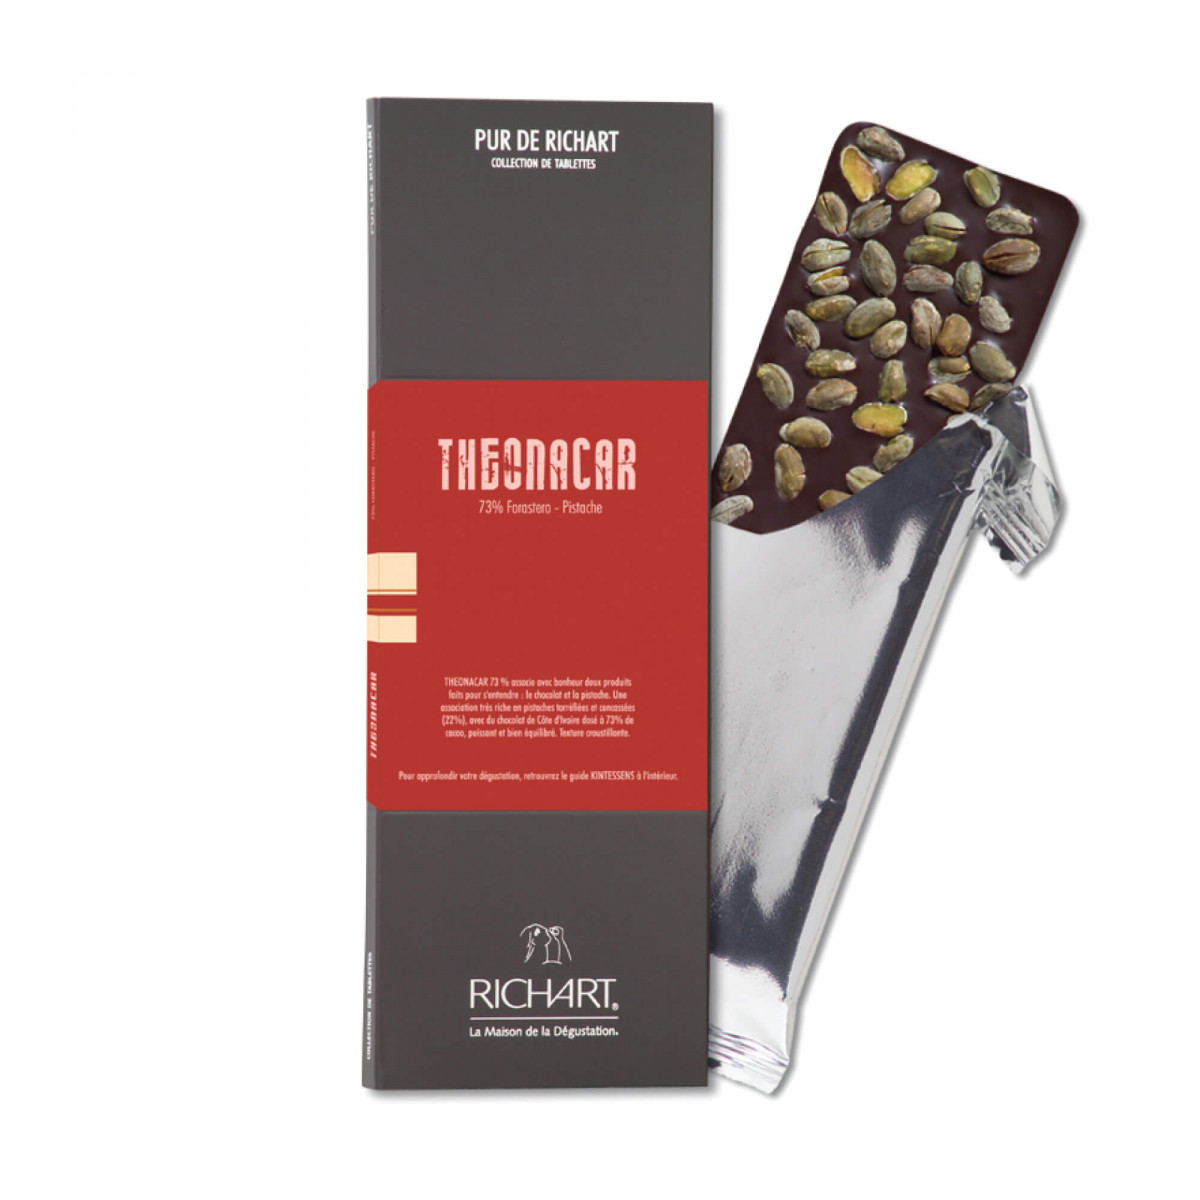 Theonacar Dark chocolate bar with pistachios